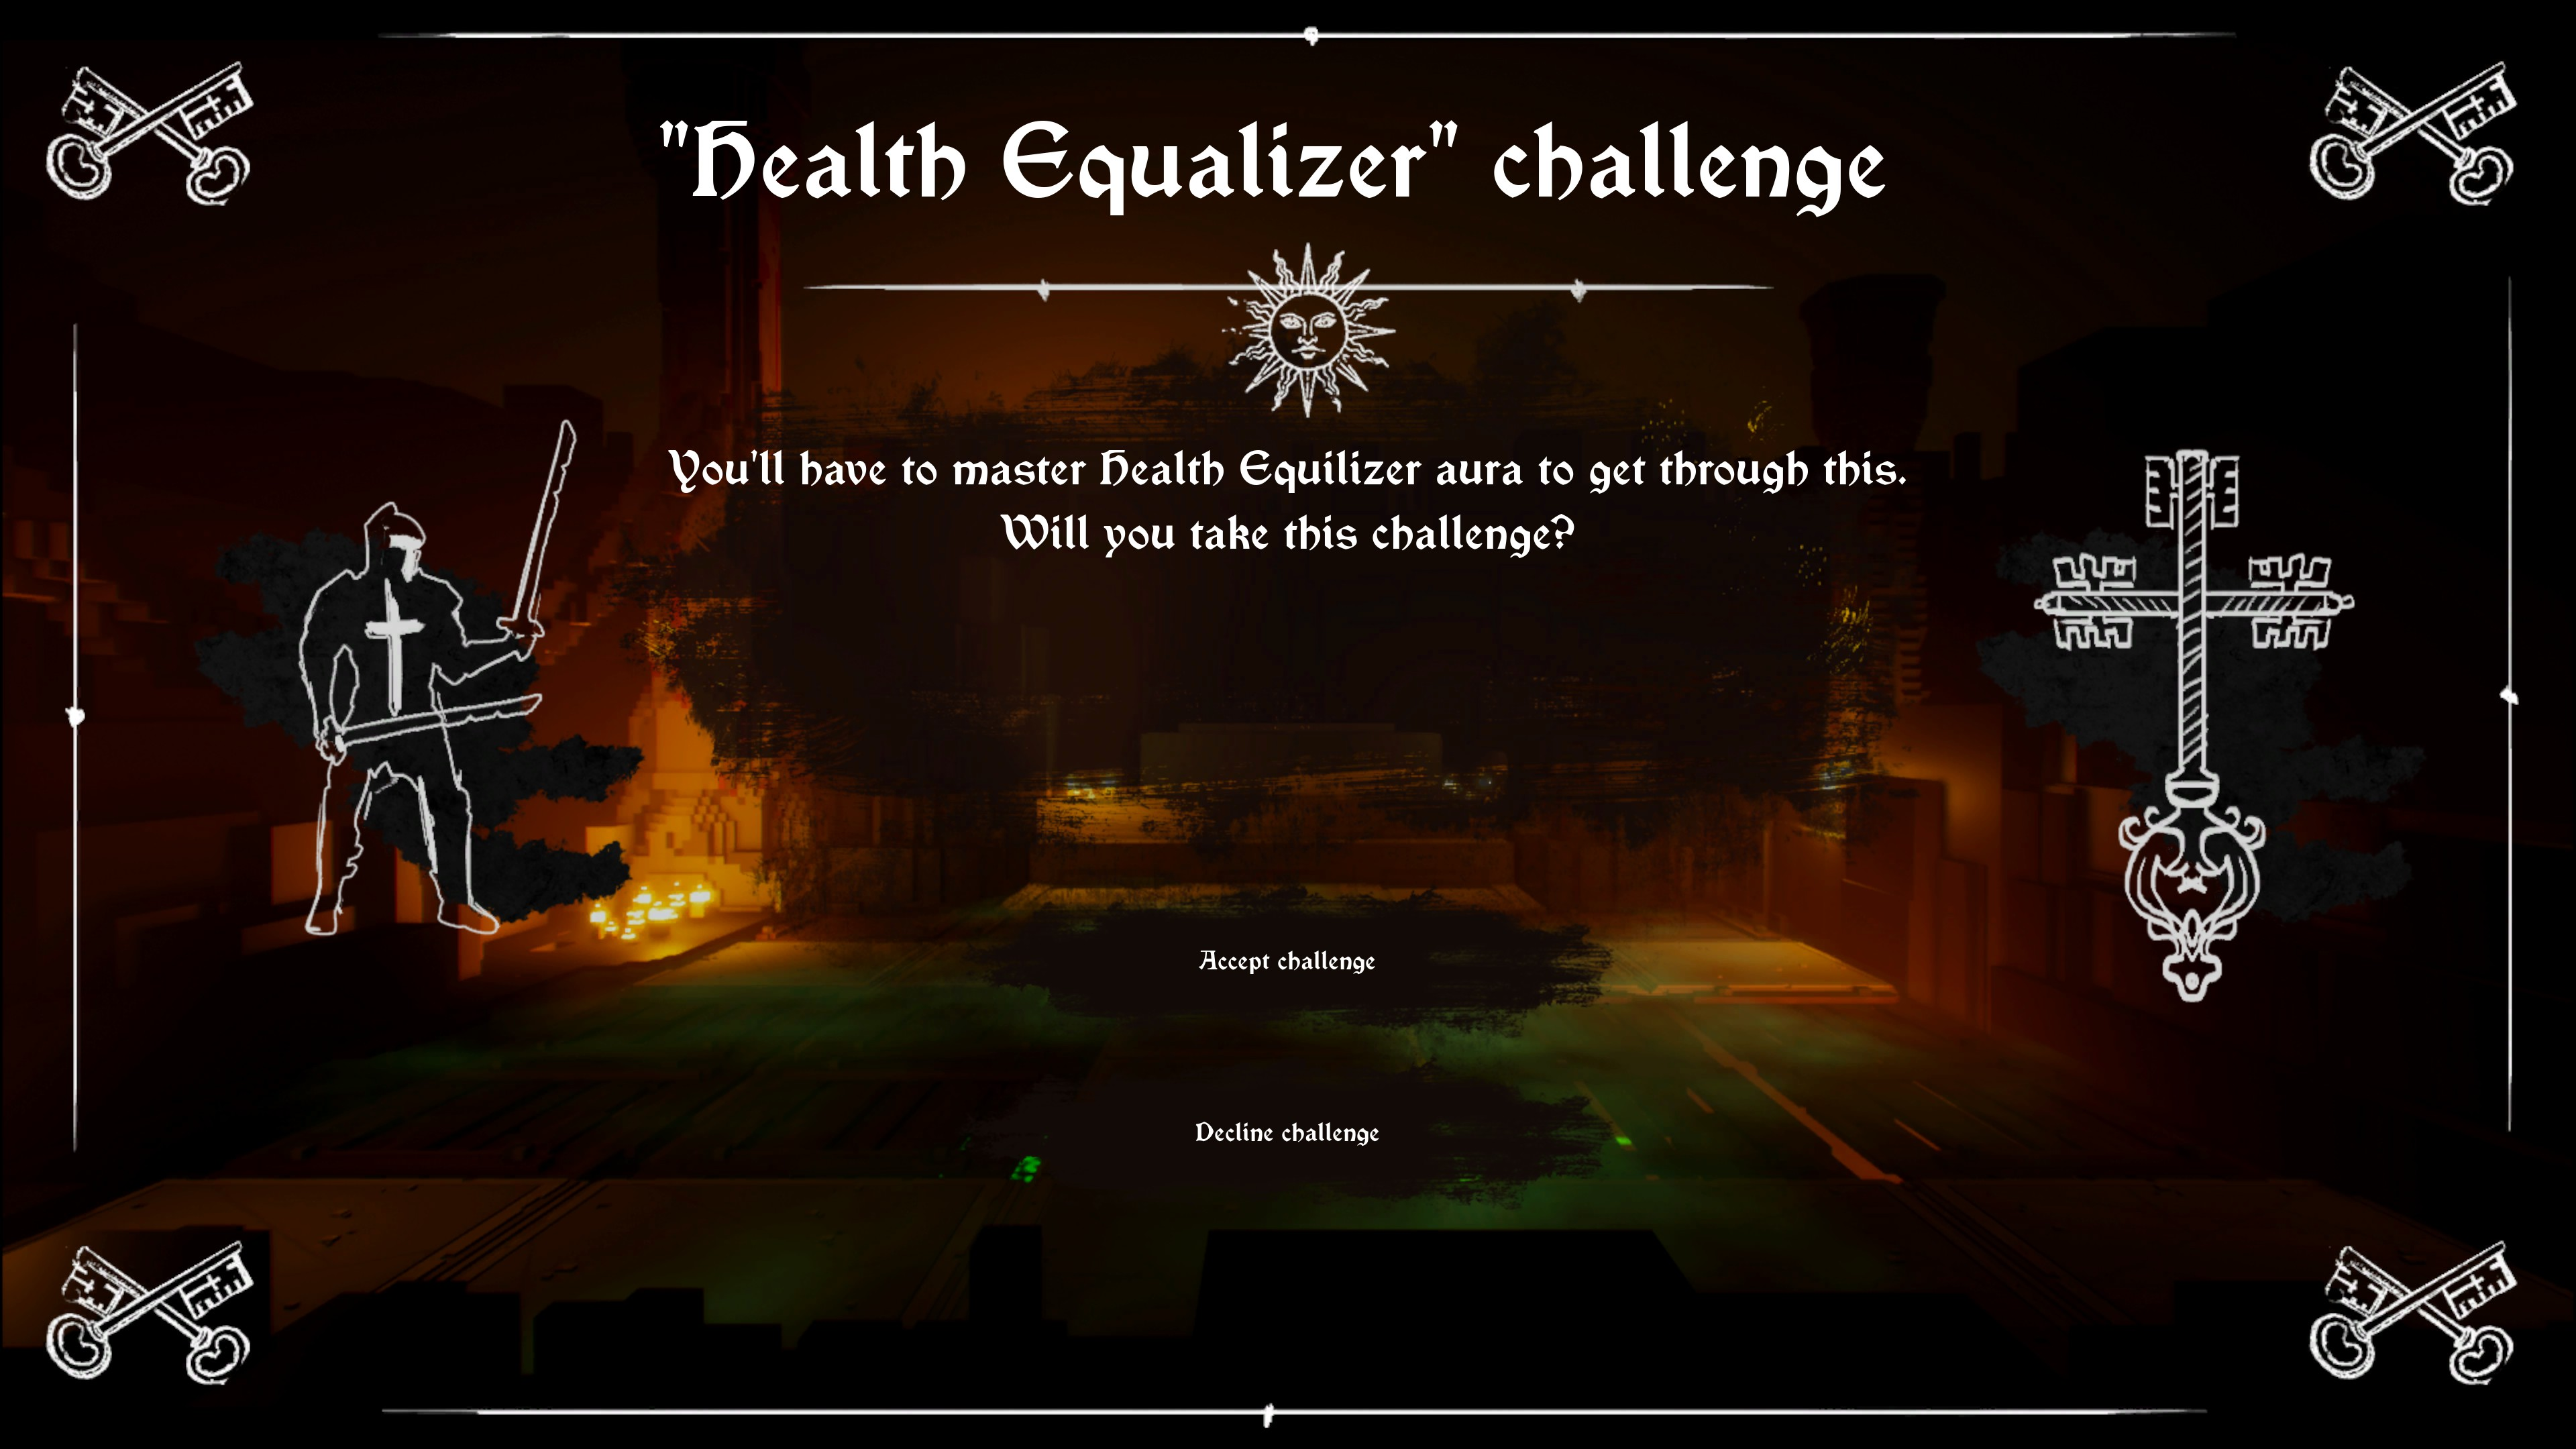 Death equalizer challenge